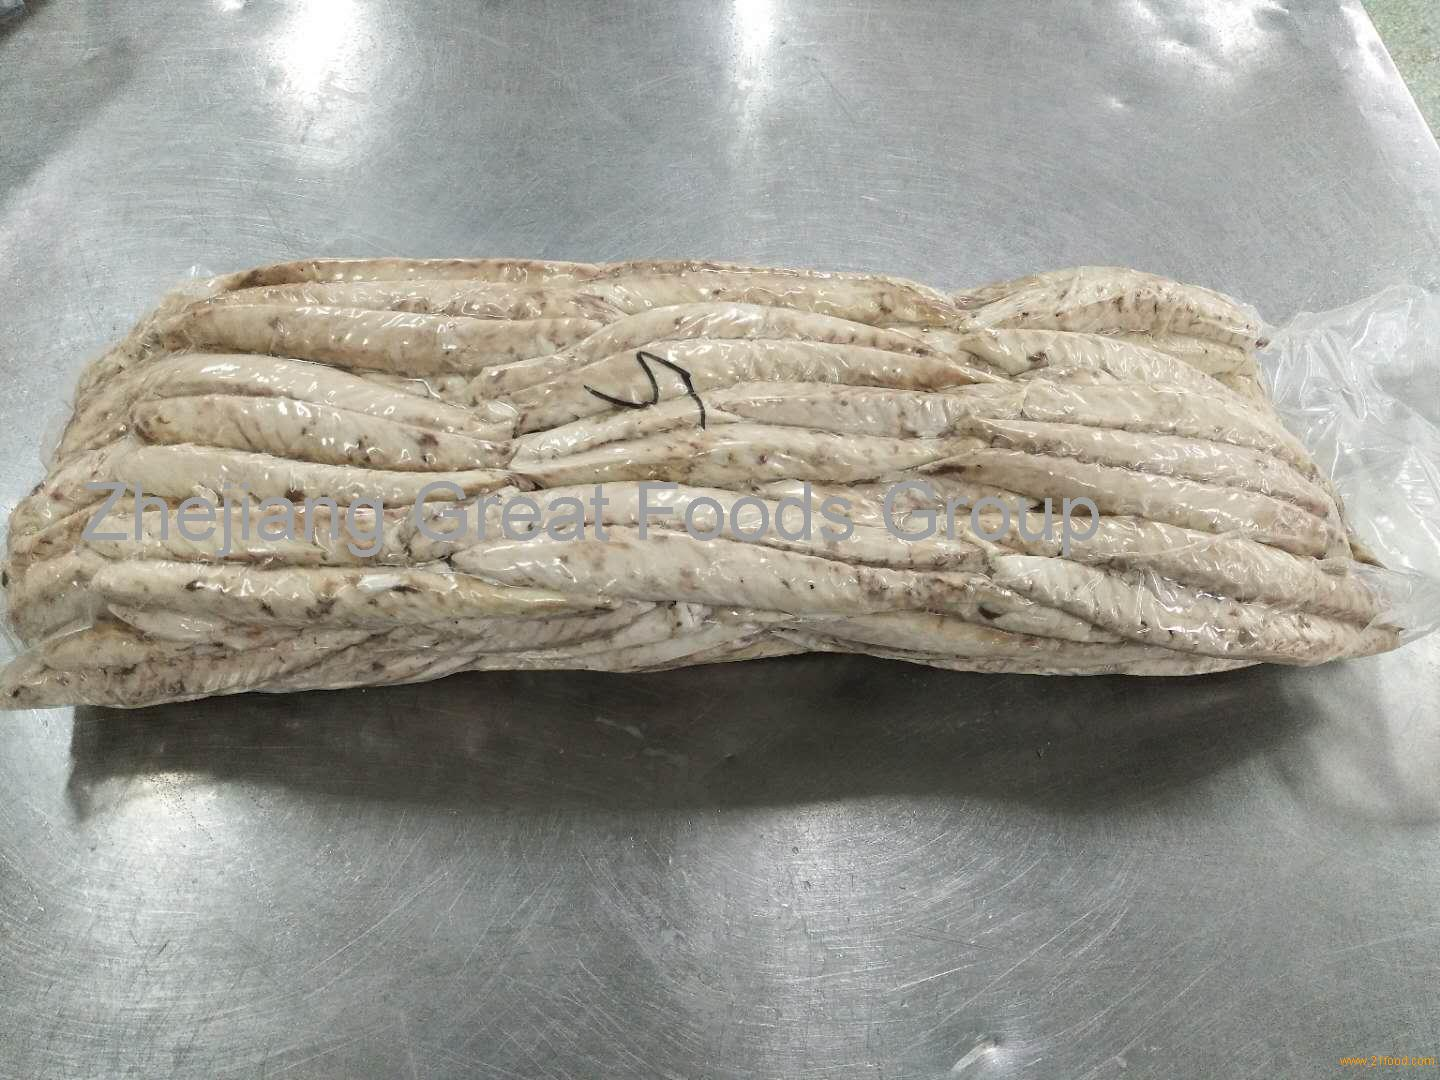 Frozen precooked mackerel loin process by 400-600 raw material